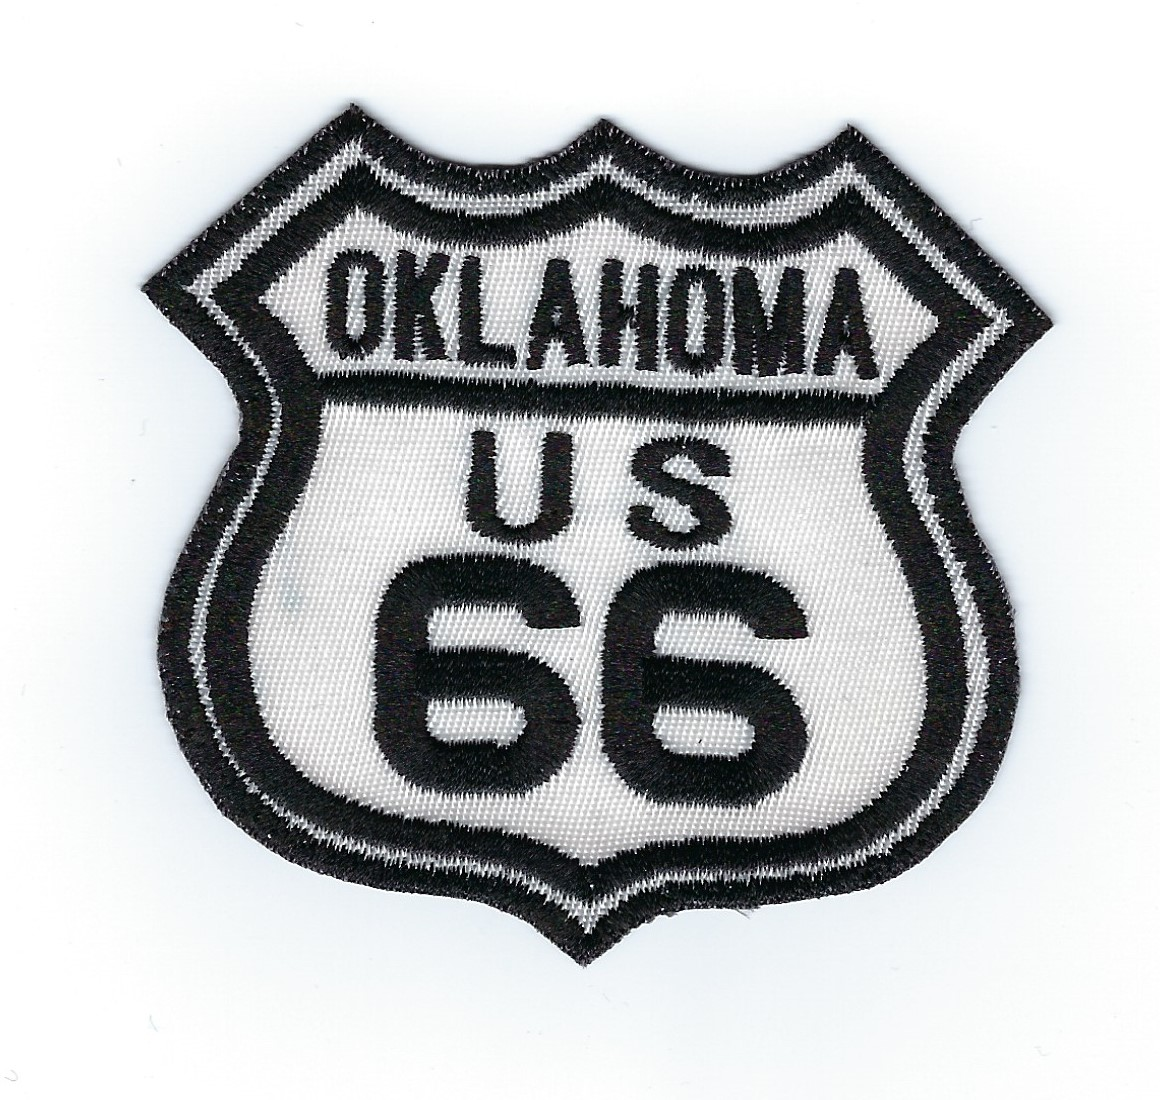 "Route 66 Oklahoma US patch, black & white street sign design, 3"" x 2.8"""